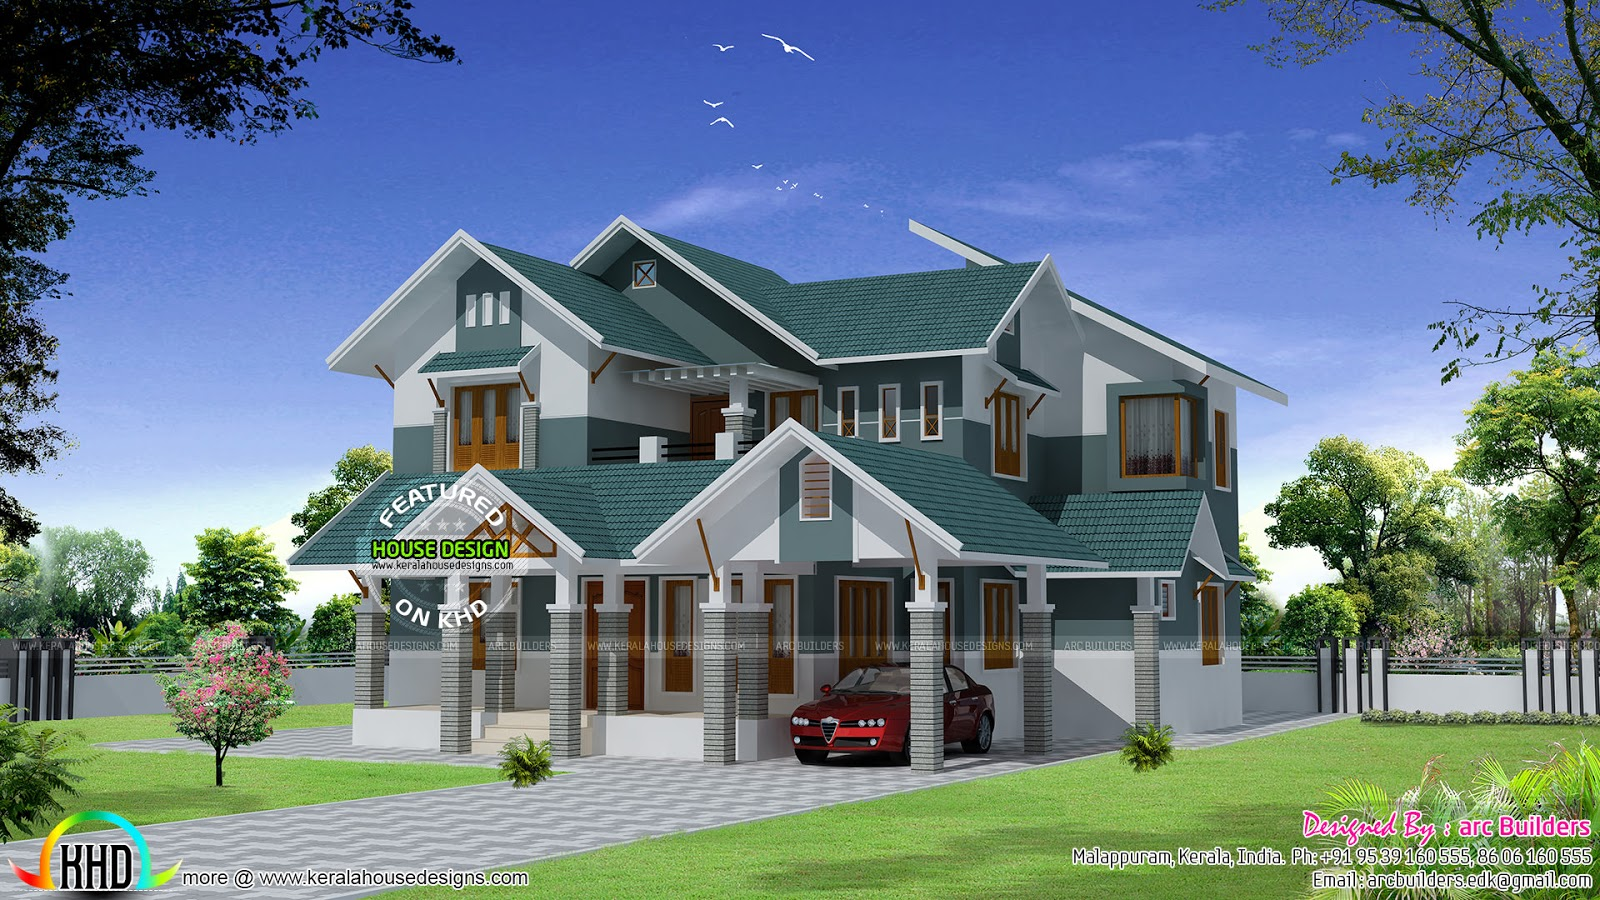 Sloping roof modern home design kerala home design and for Designed home plans